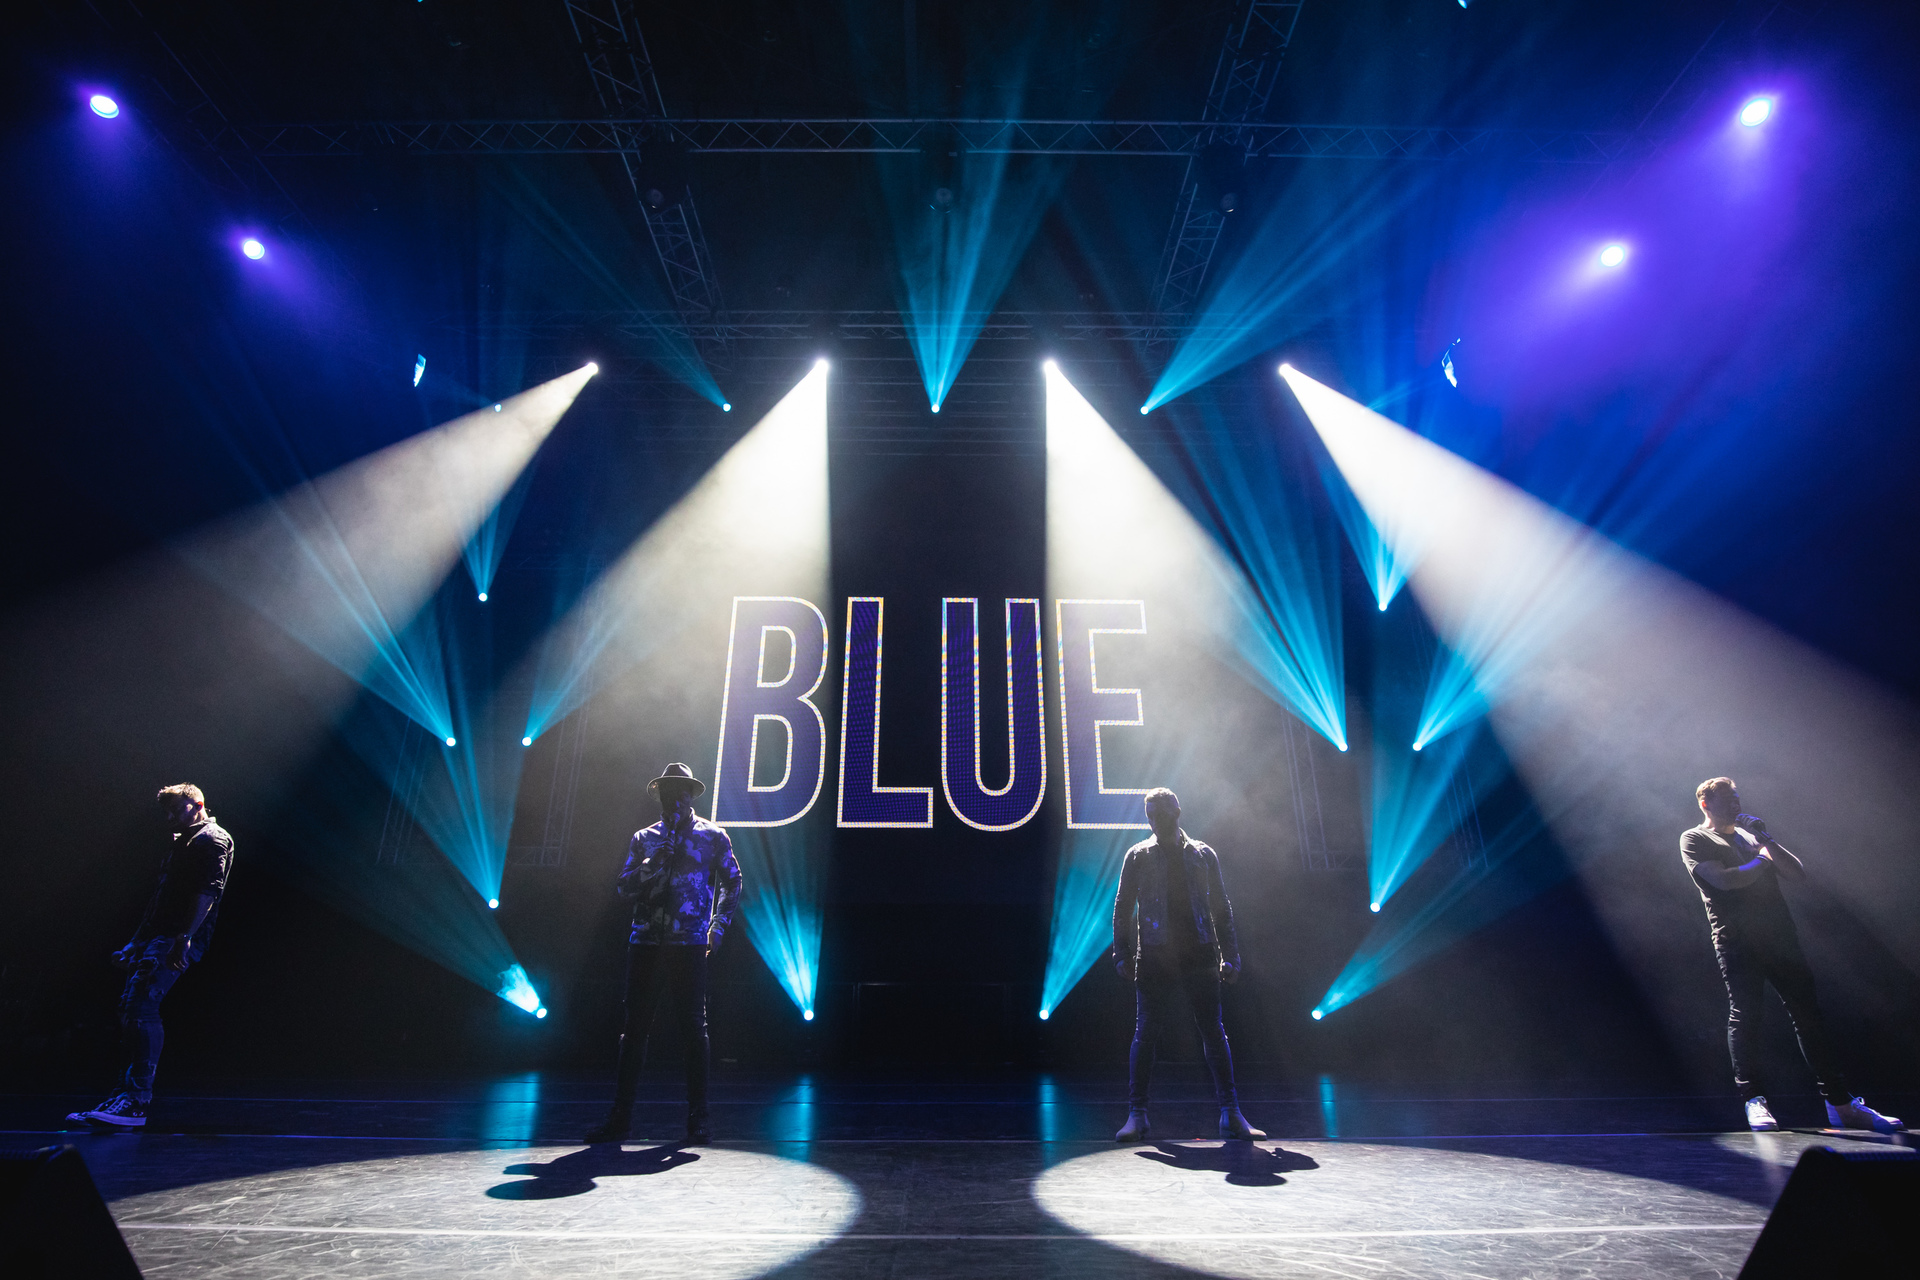 Blue's concert in Singapore reminds us that music from the 2000s is